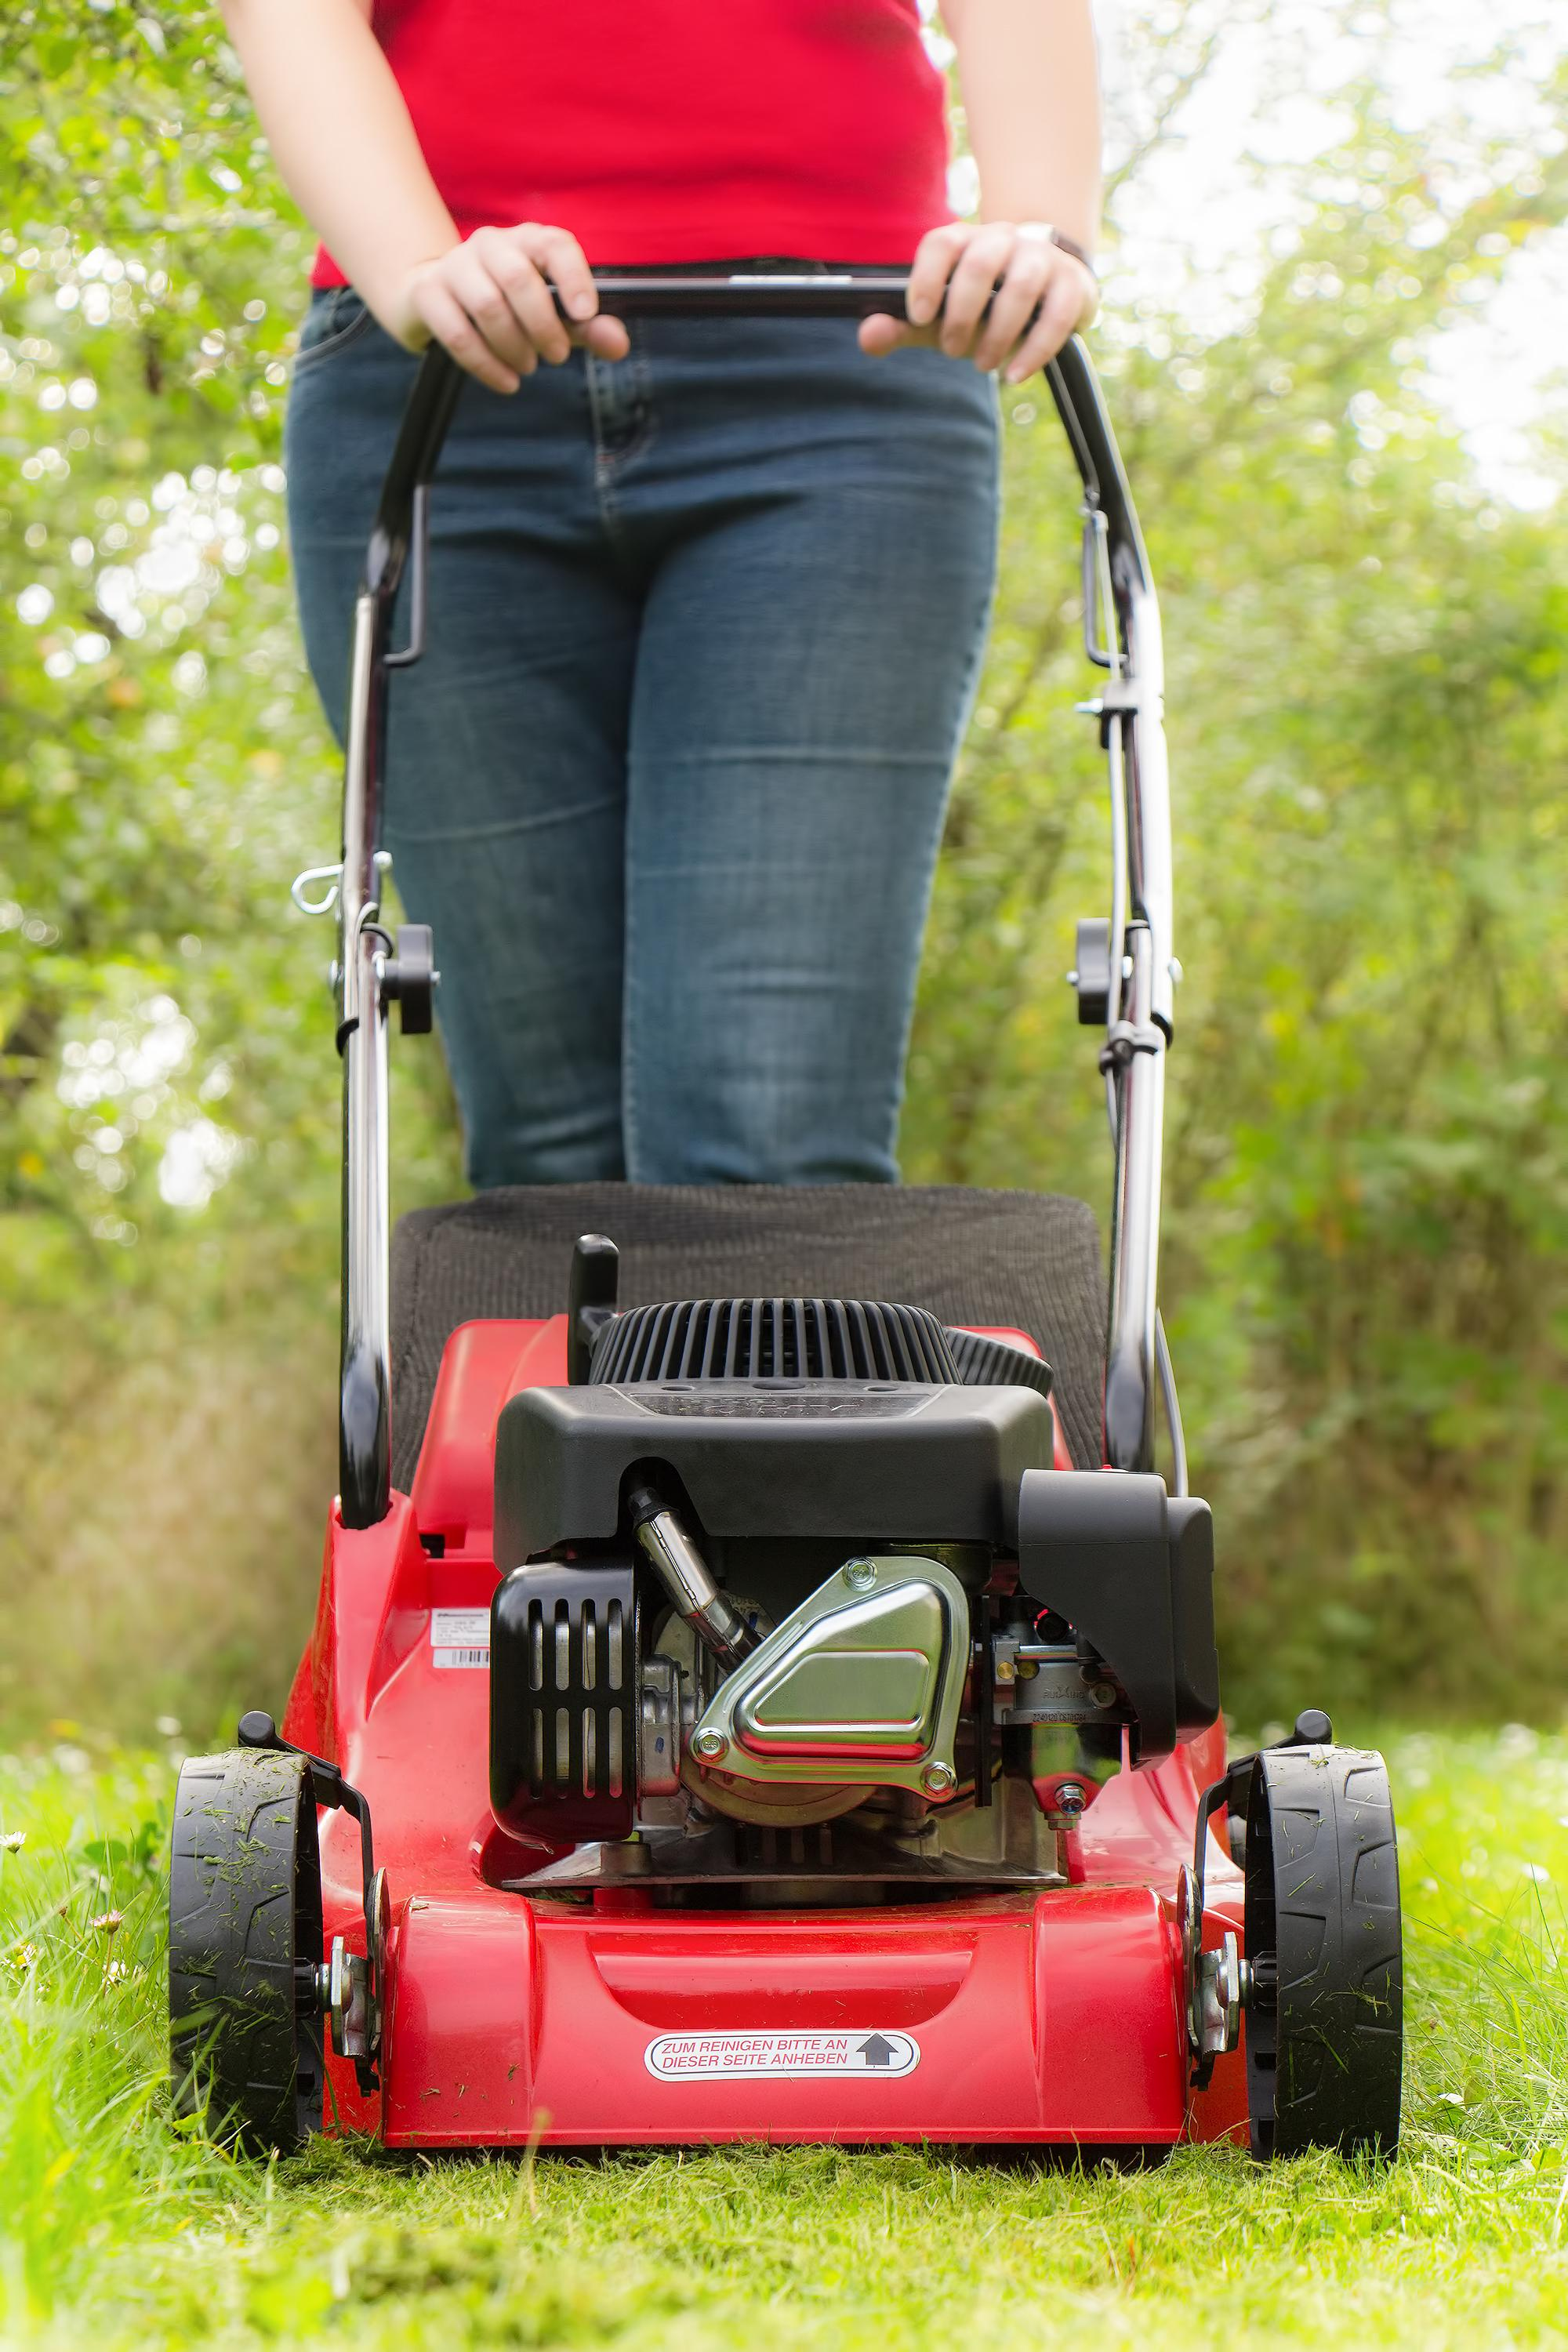 The Best Petrol Lawn Mower 2018 Lawn Mower Wizard